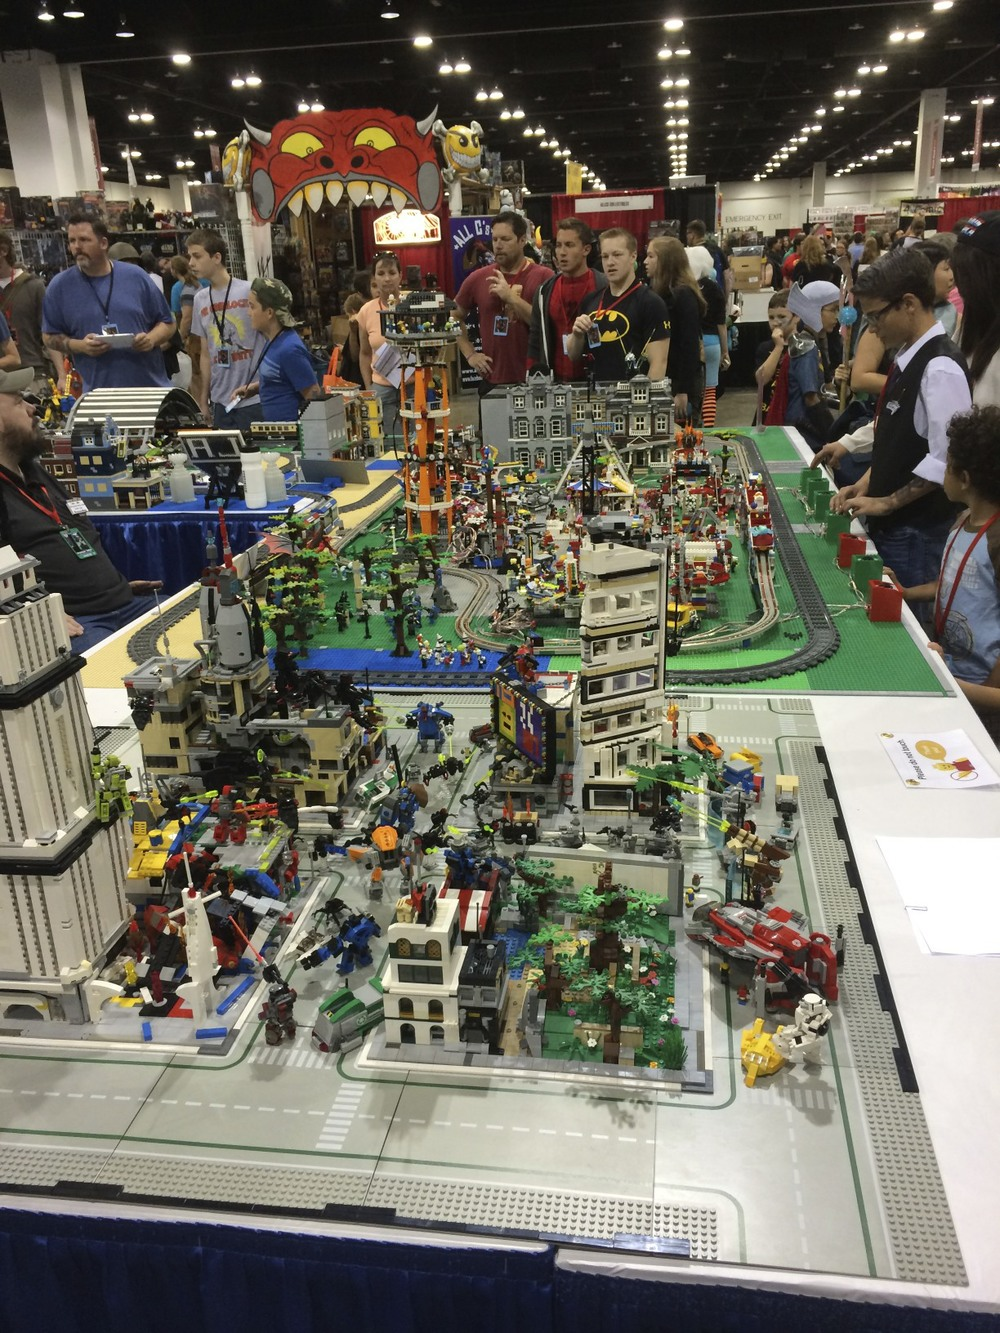 Awesome Lego at the Expo.